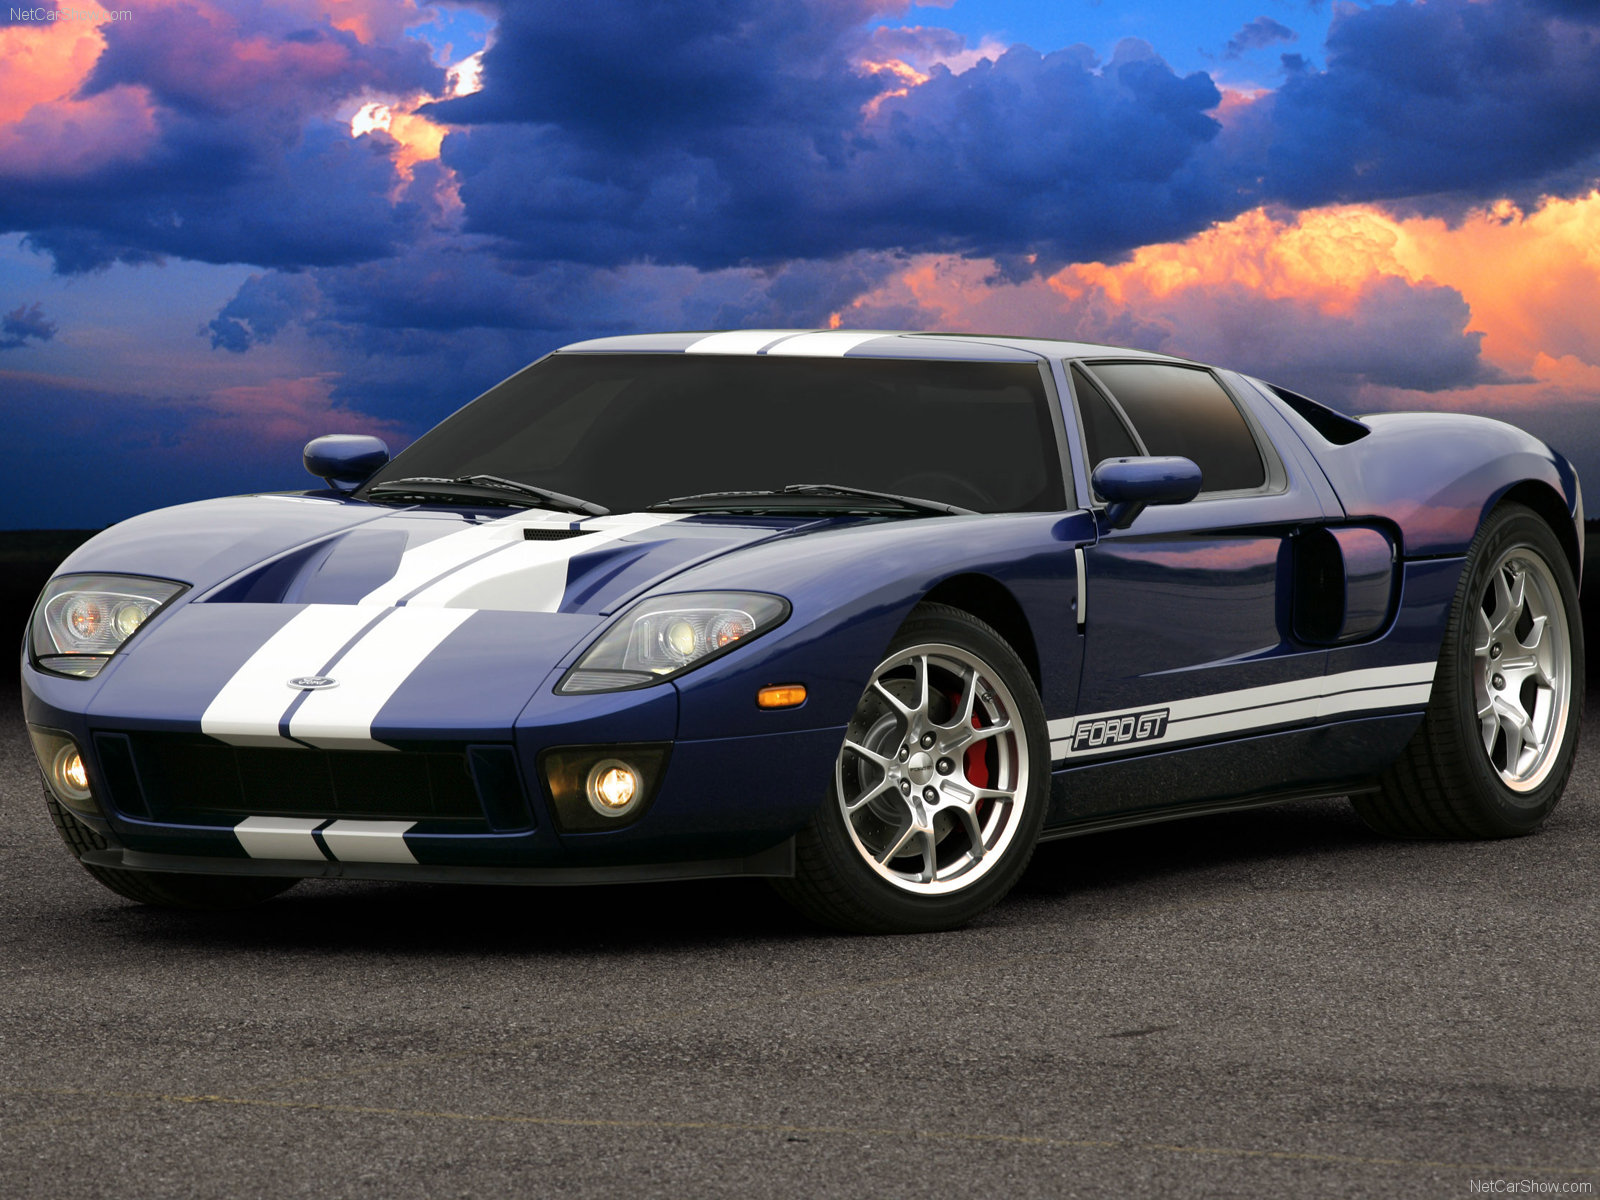 Cars ford gt #4